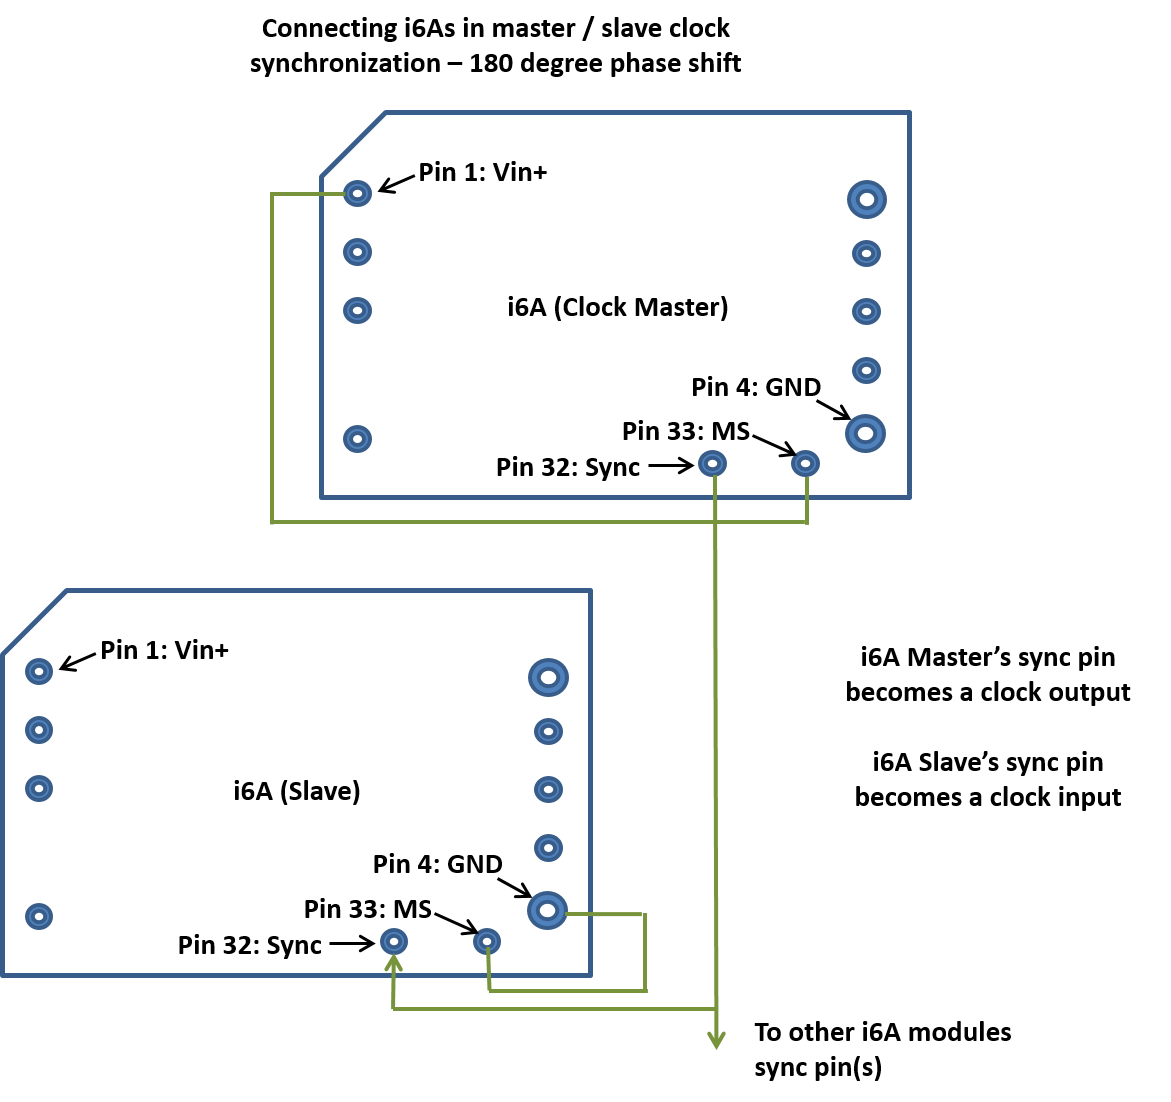 Power Topics For Supply Users Circuit Diagram Of Synchronized Mains Voltage Control An External Clock Is Used With No Phase Shift All The I6a Modules Operate At Same Frequency As Master Slave